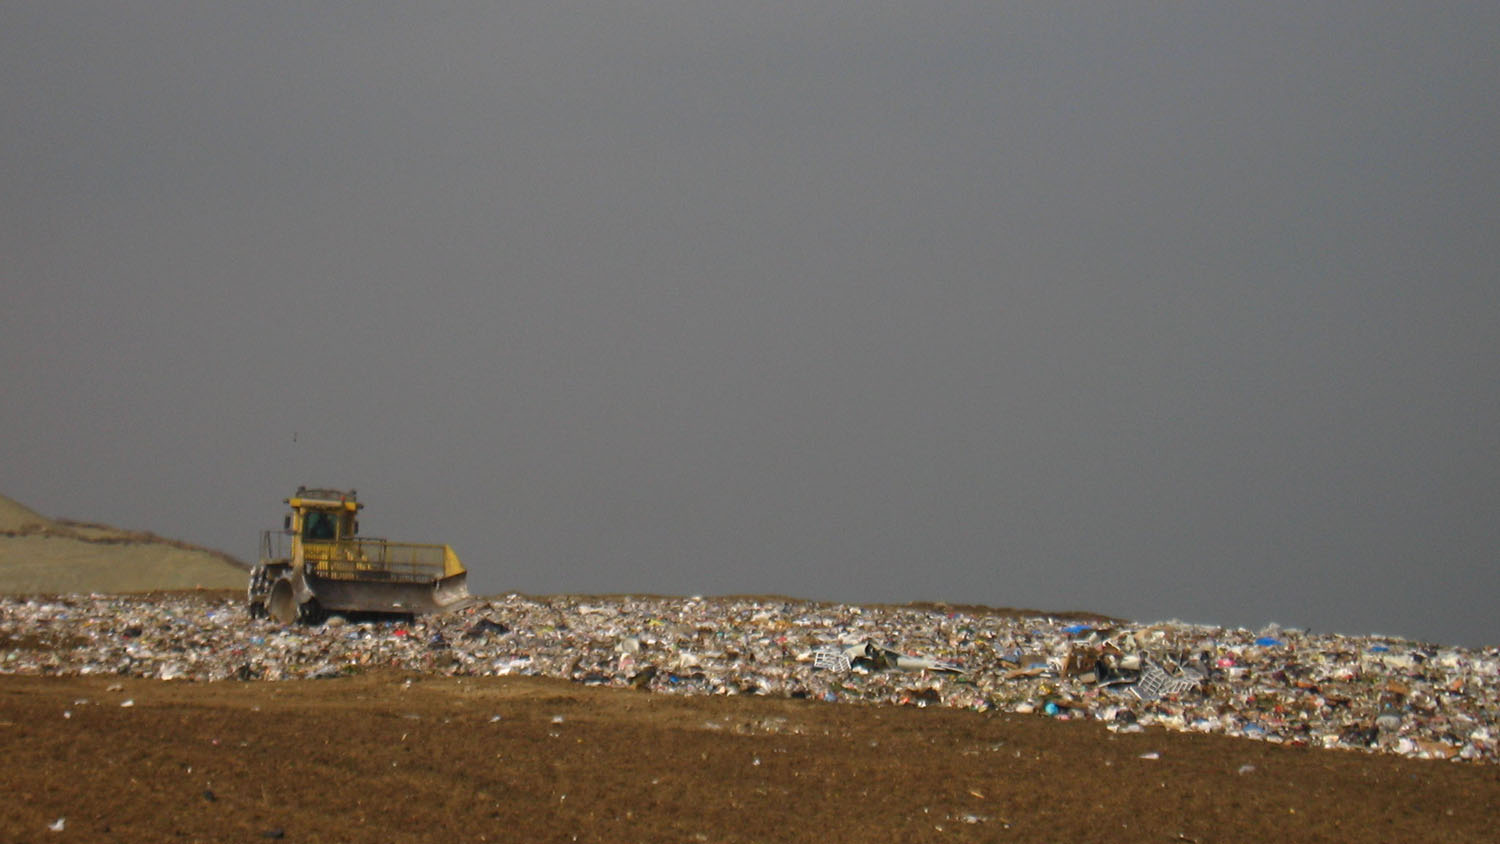 bulldozer in a landfill